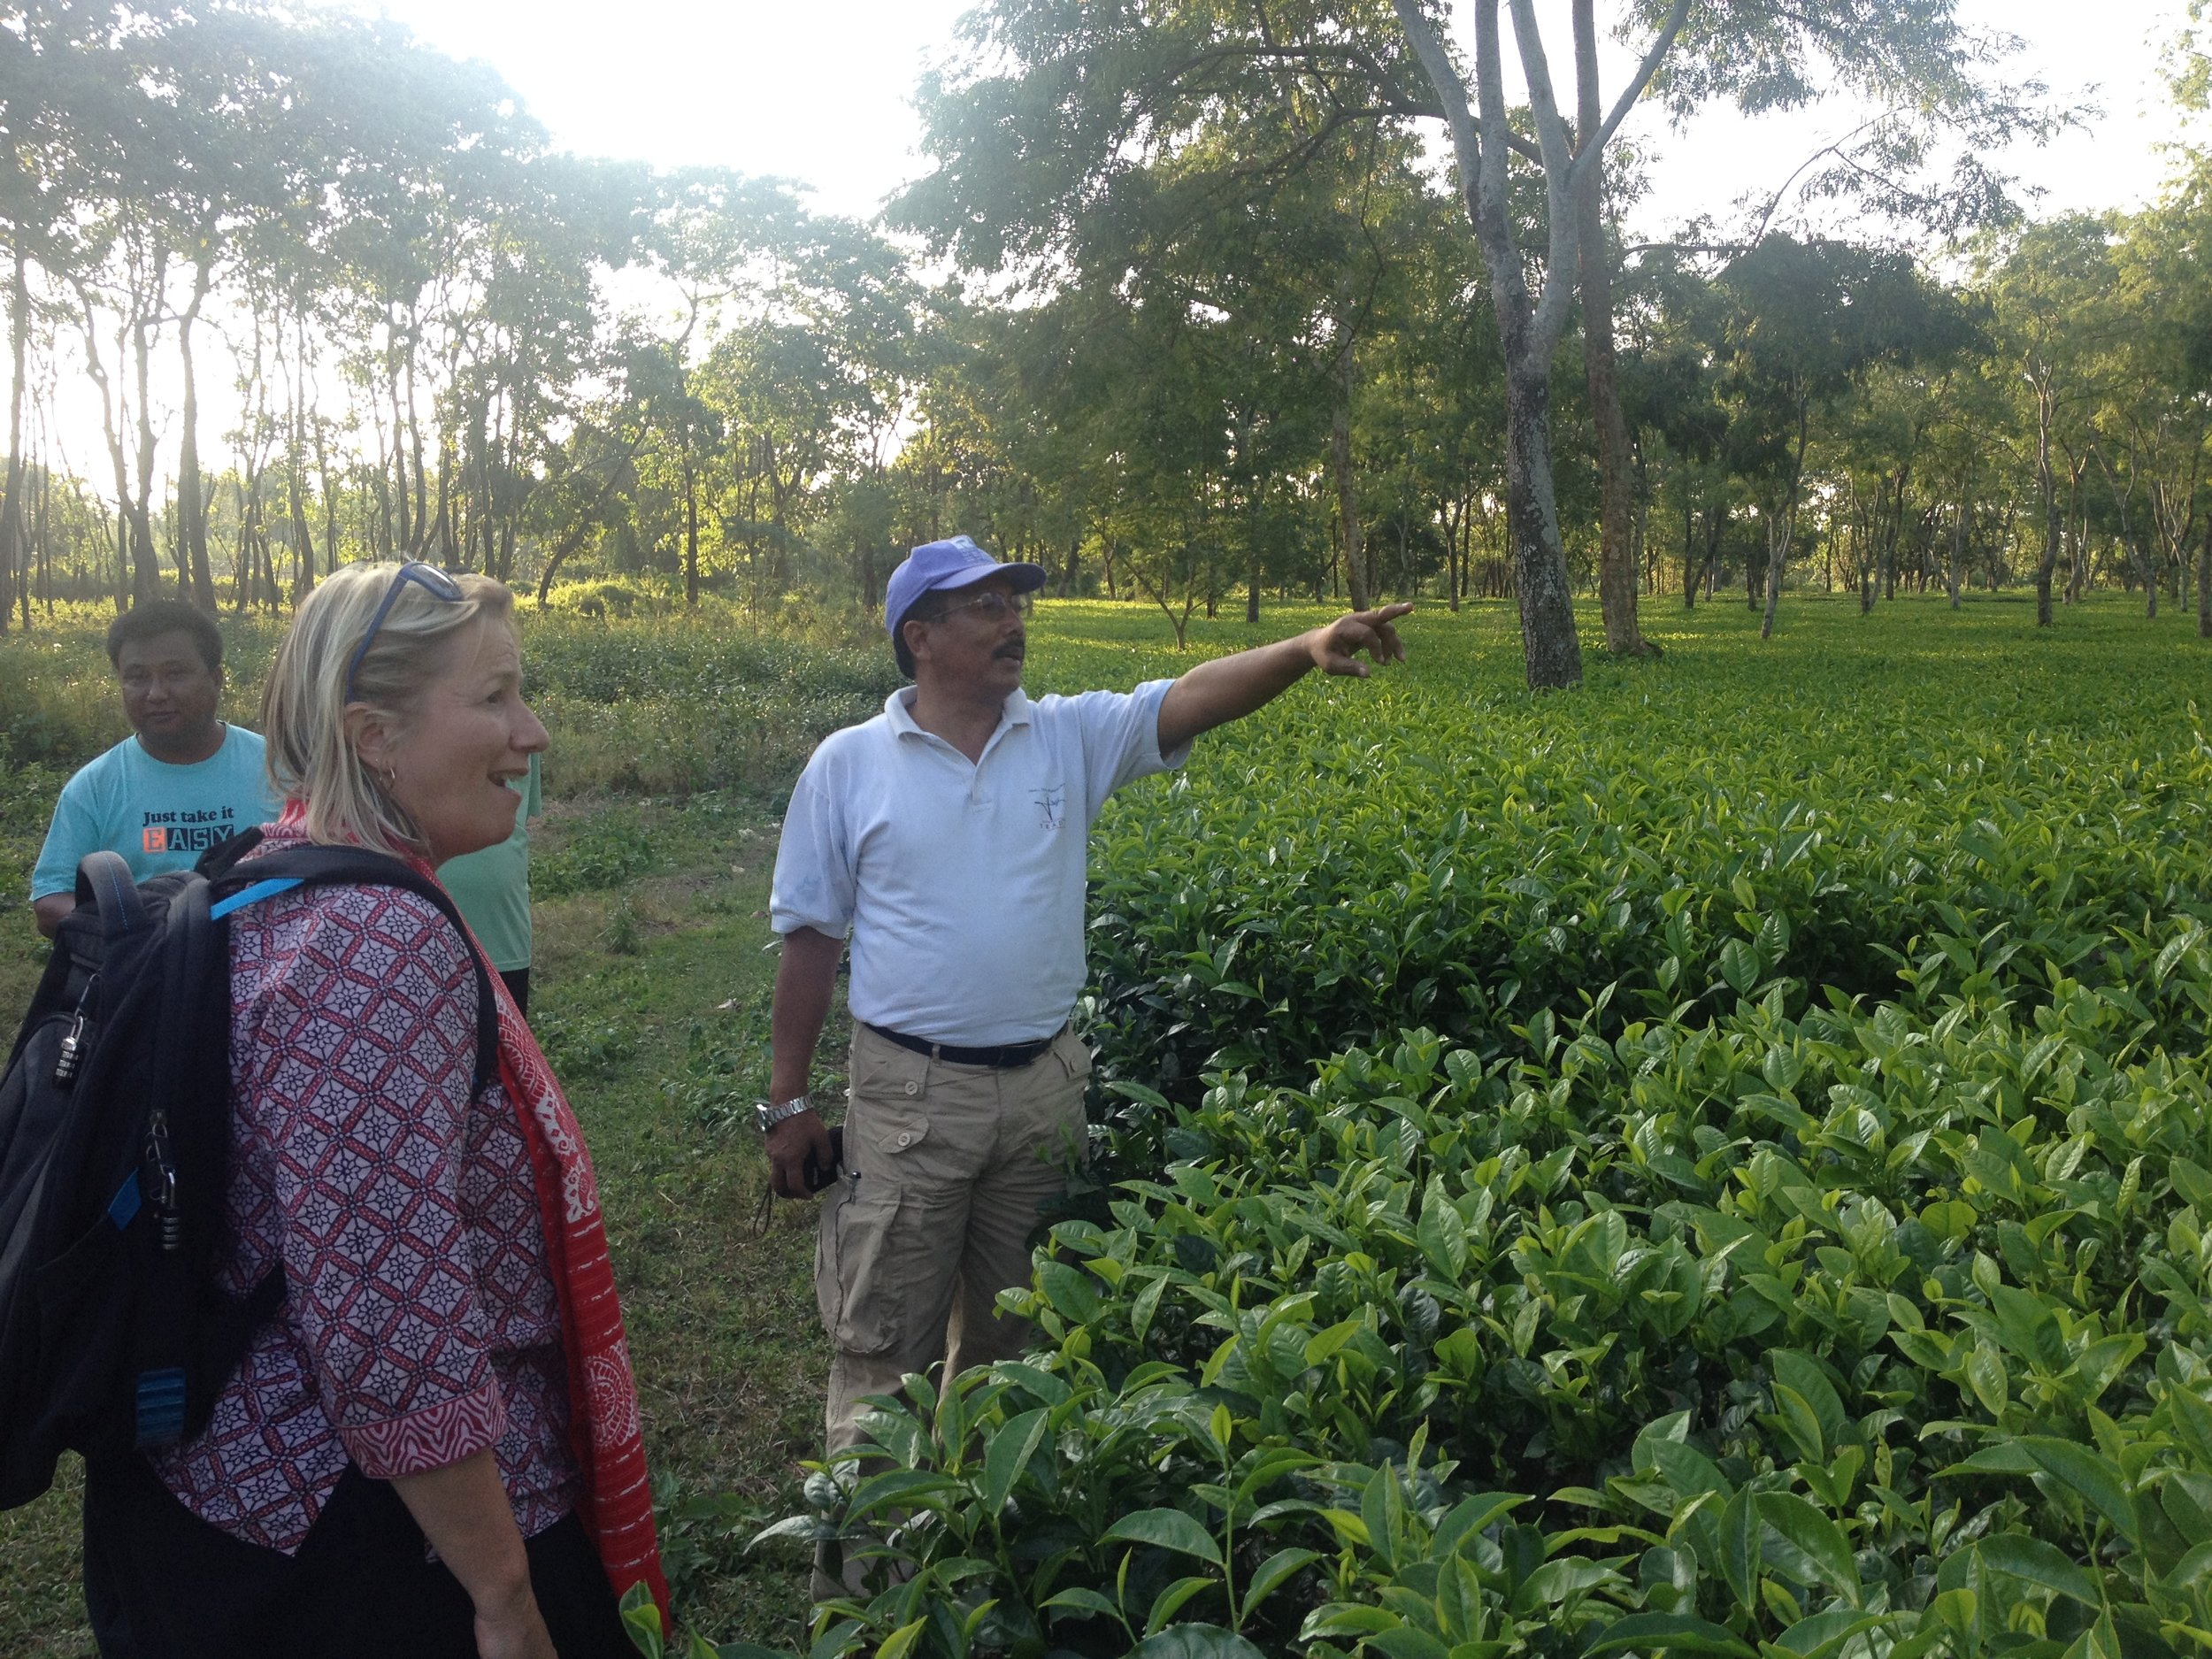 Designing impact investment opportunities for Indian tea farmers